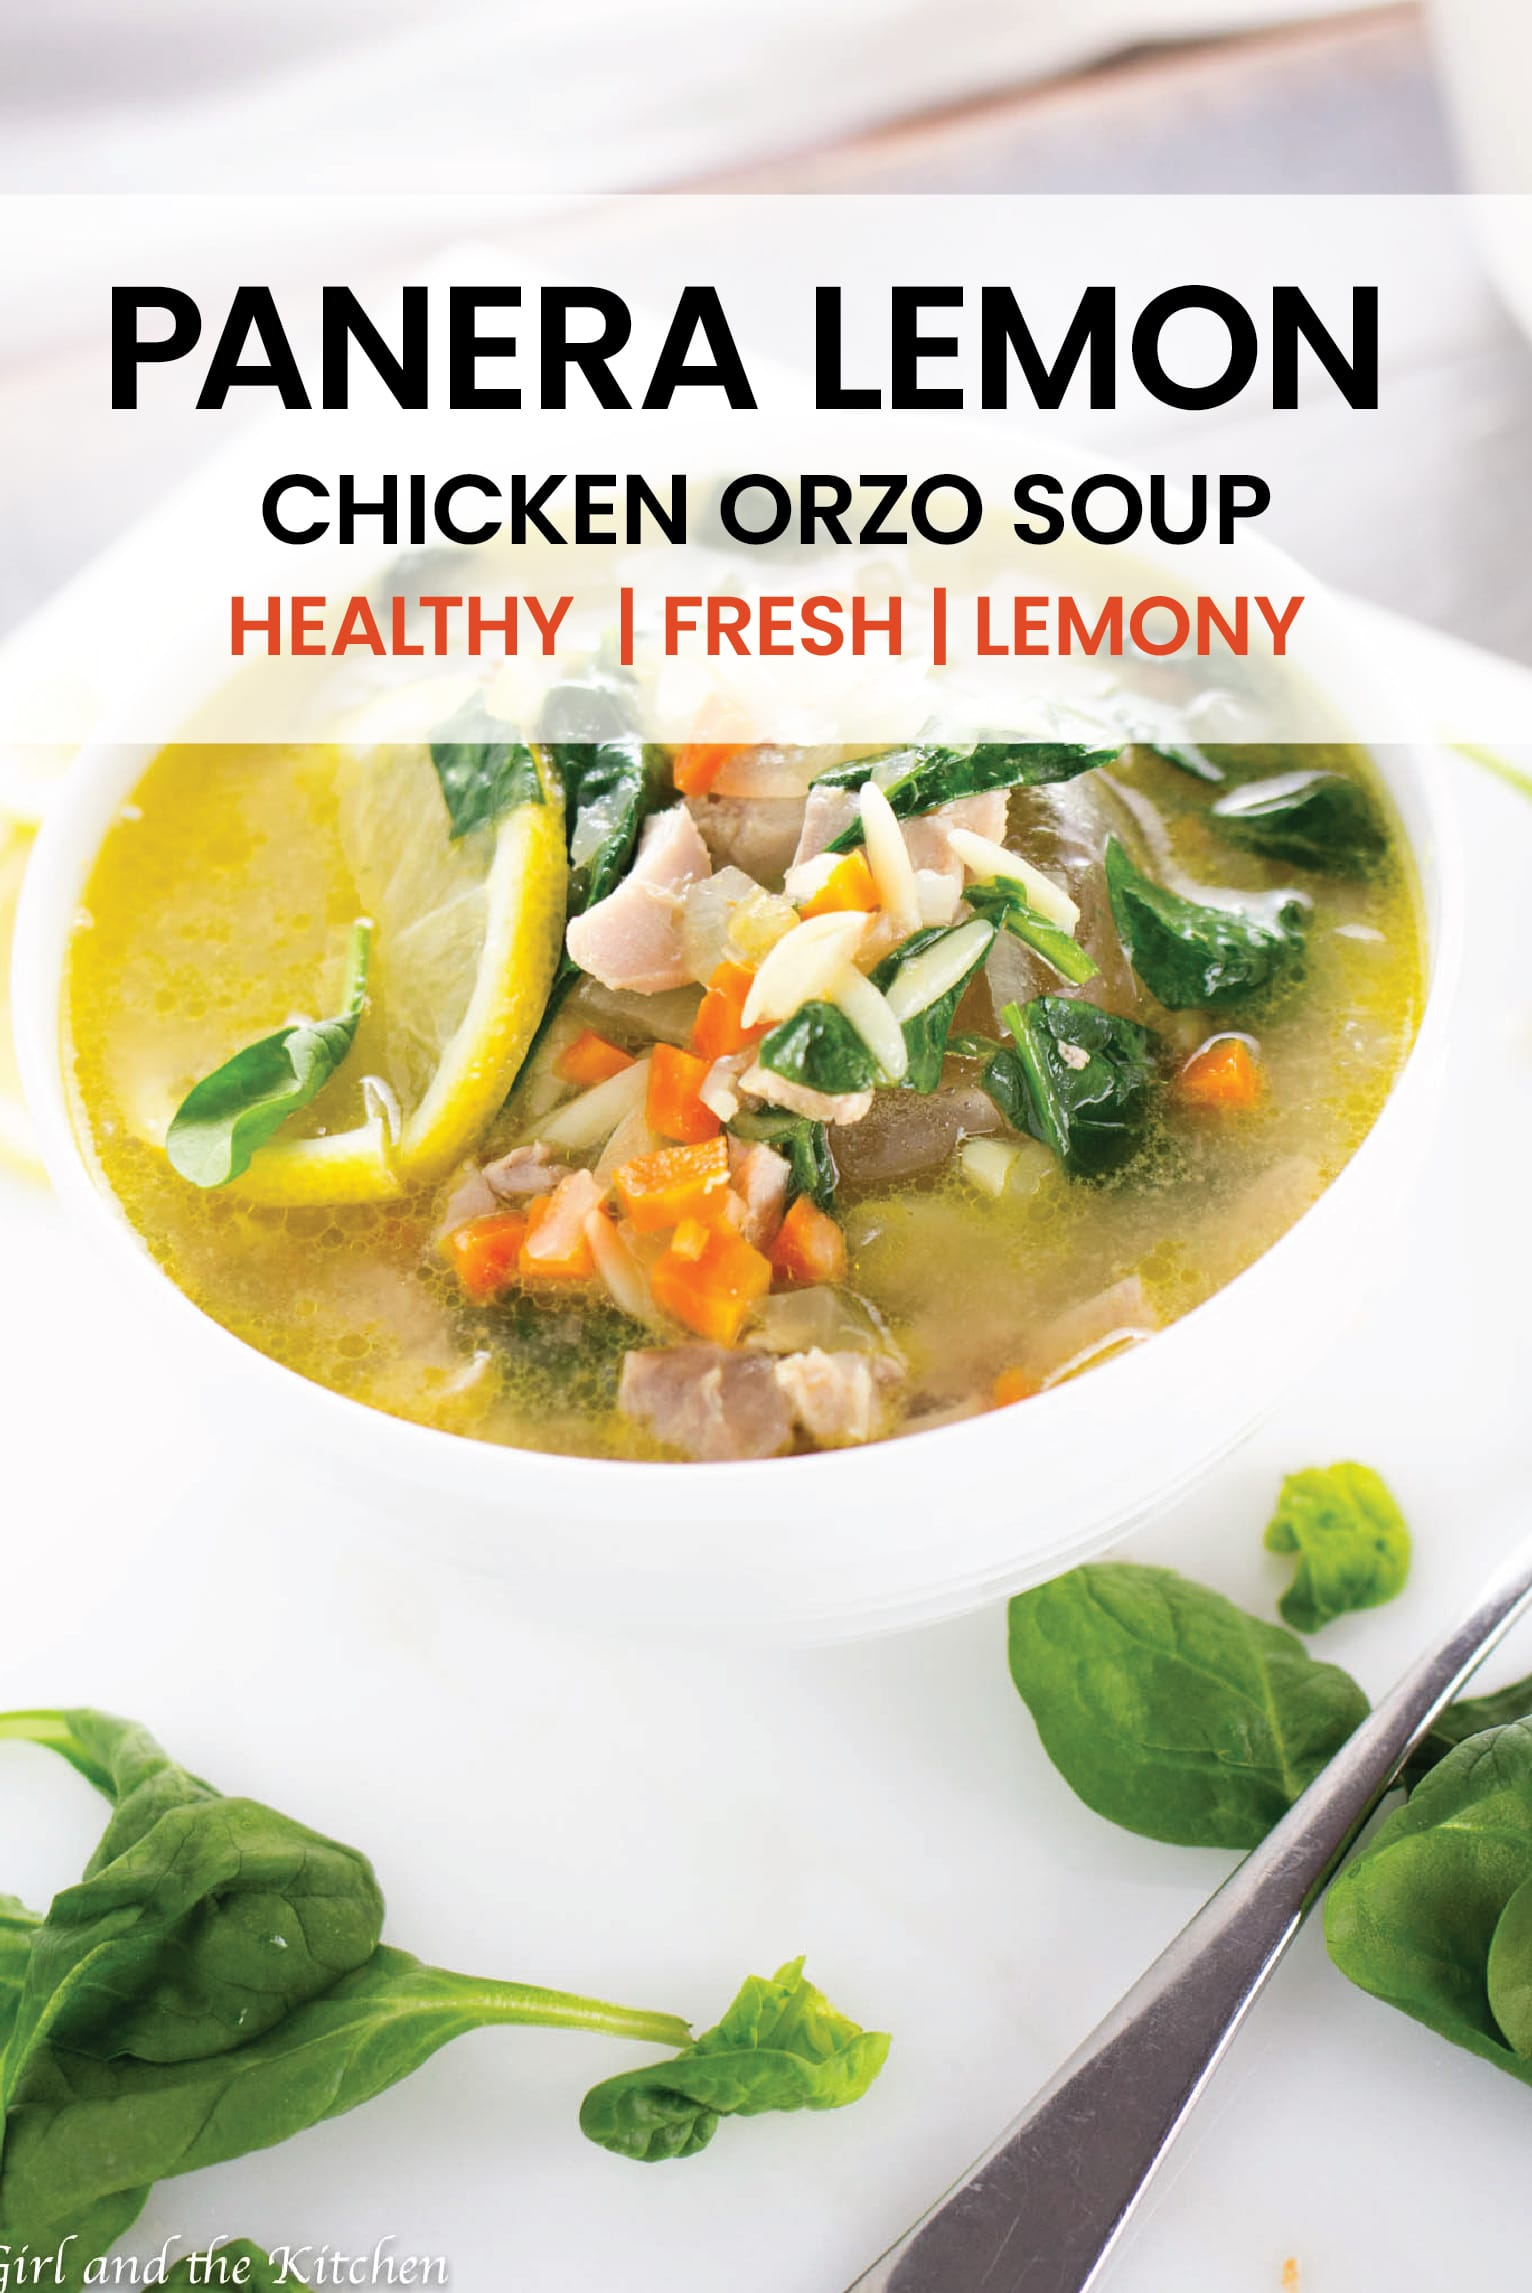 A perfect take on the popular Panera Lemon Chicken Orzo soup!